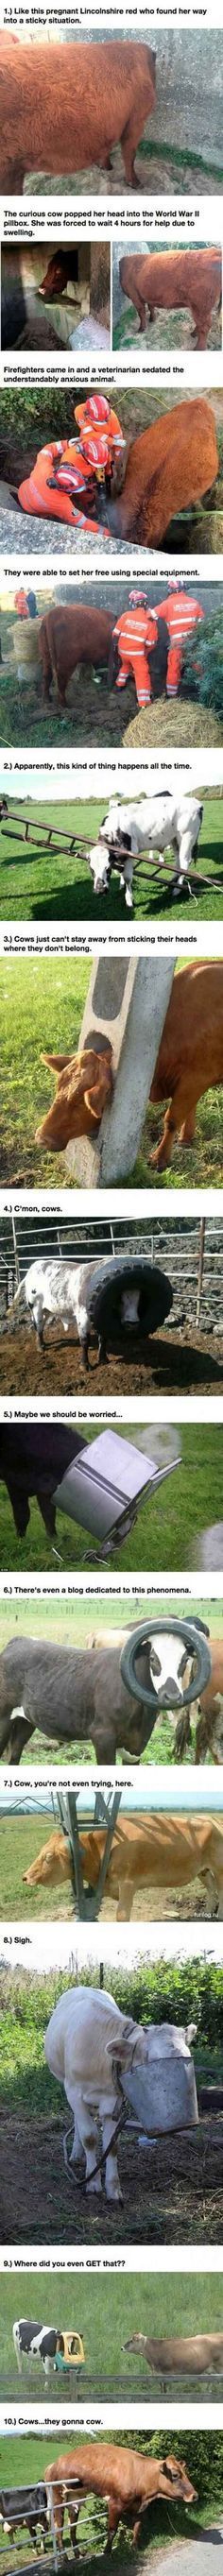 Cows I CANT EVEN